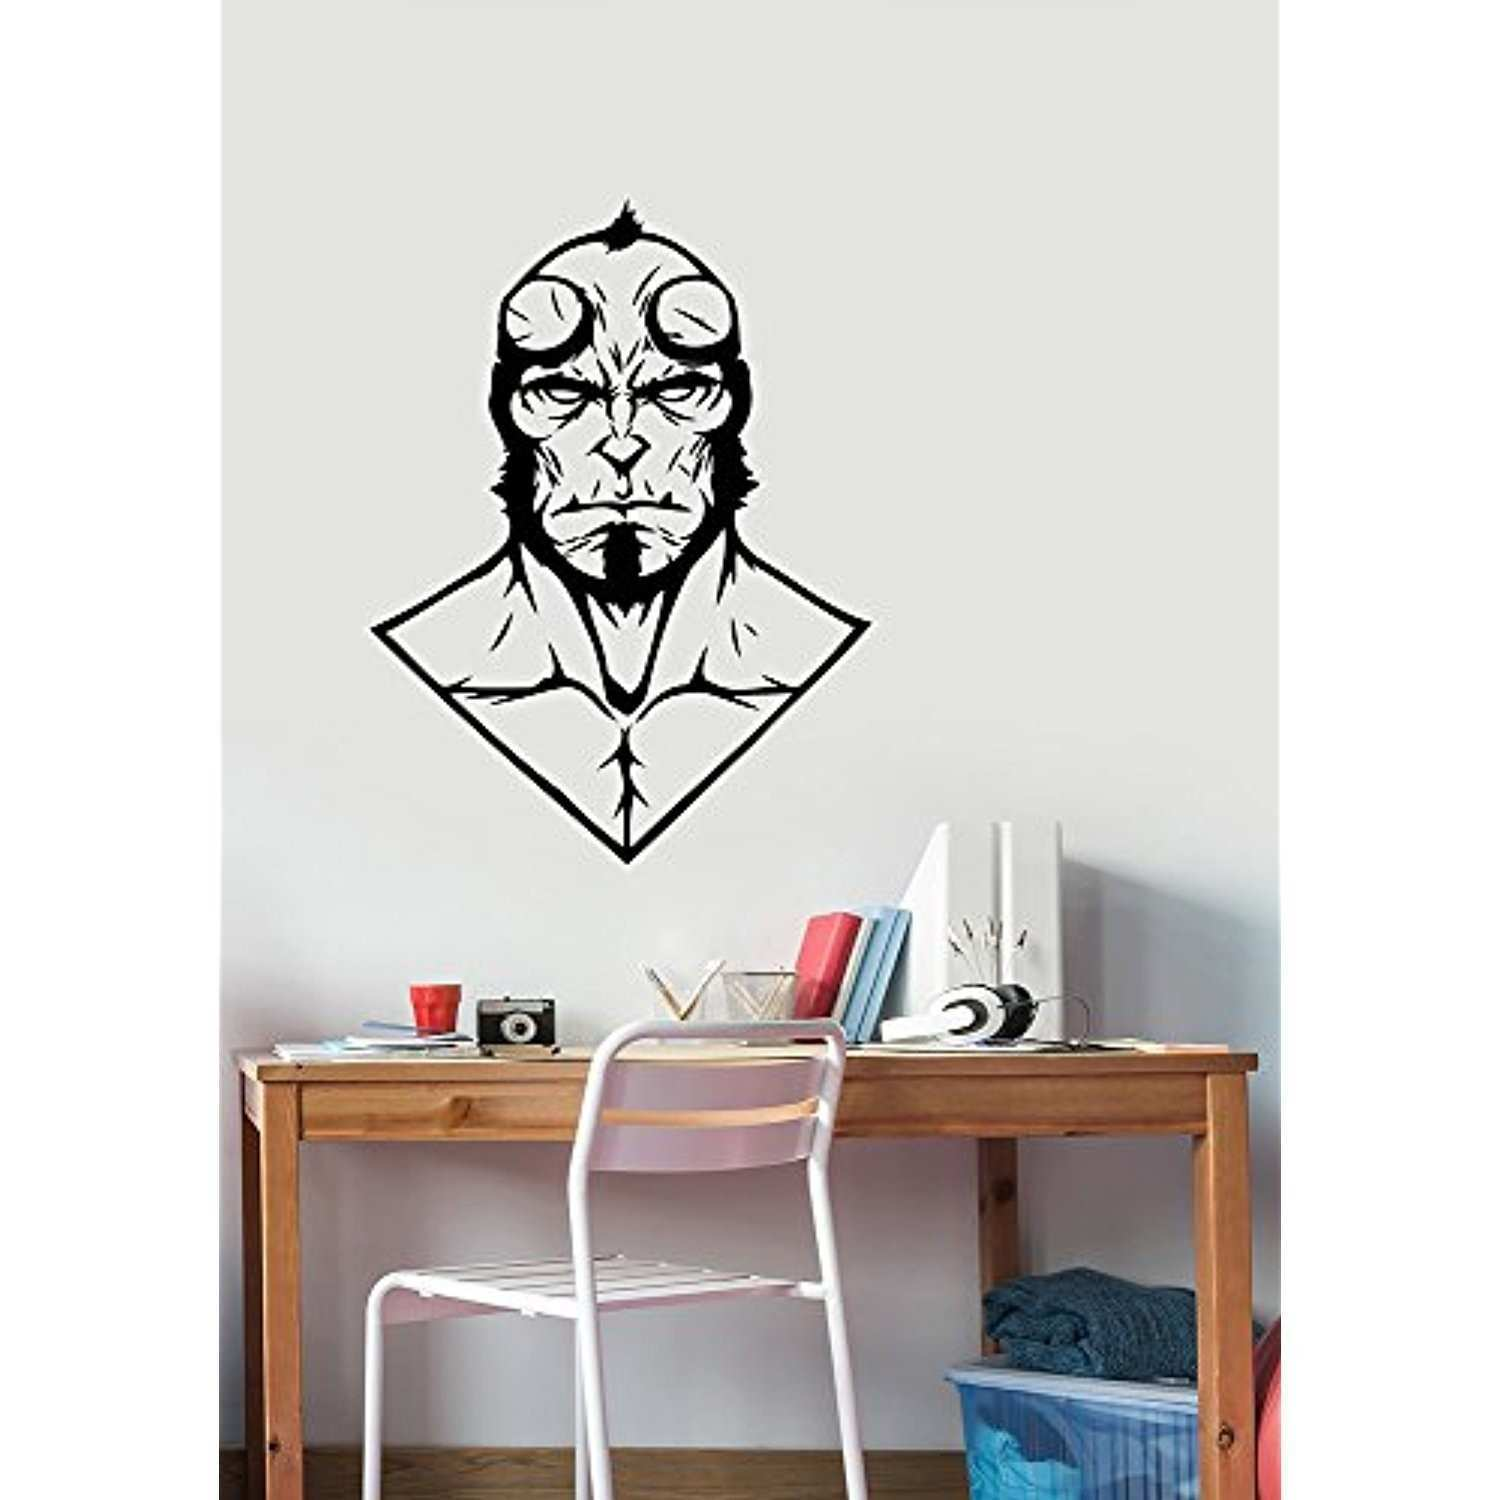 Awesome Vinyl Decals for Hangers